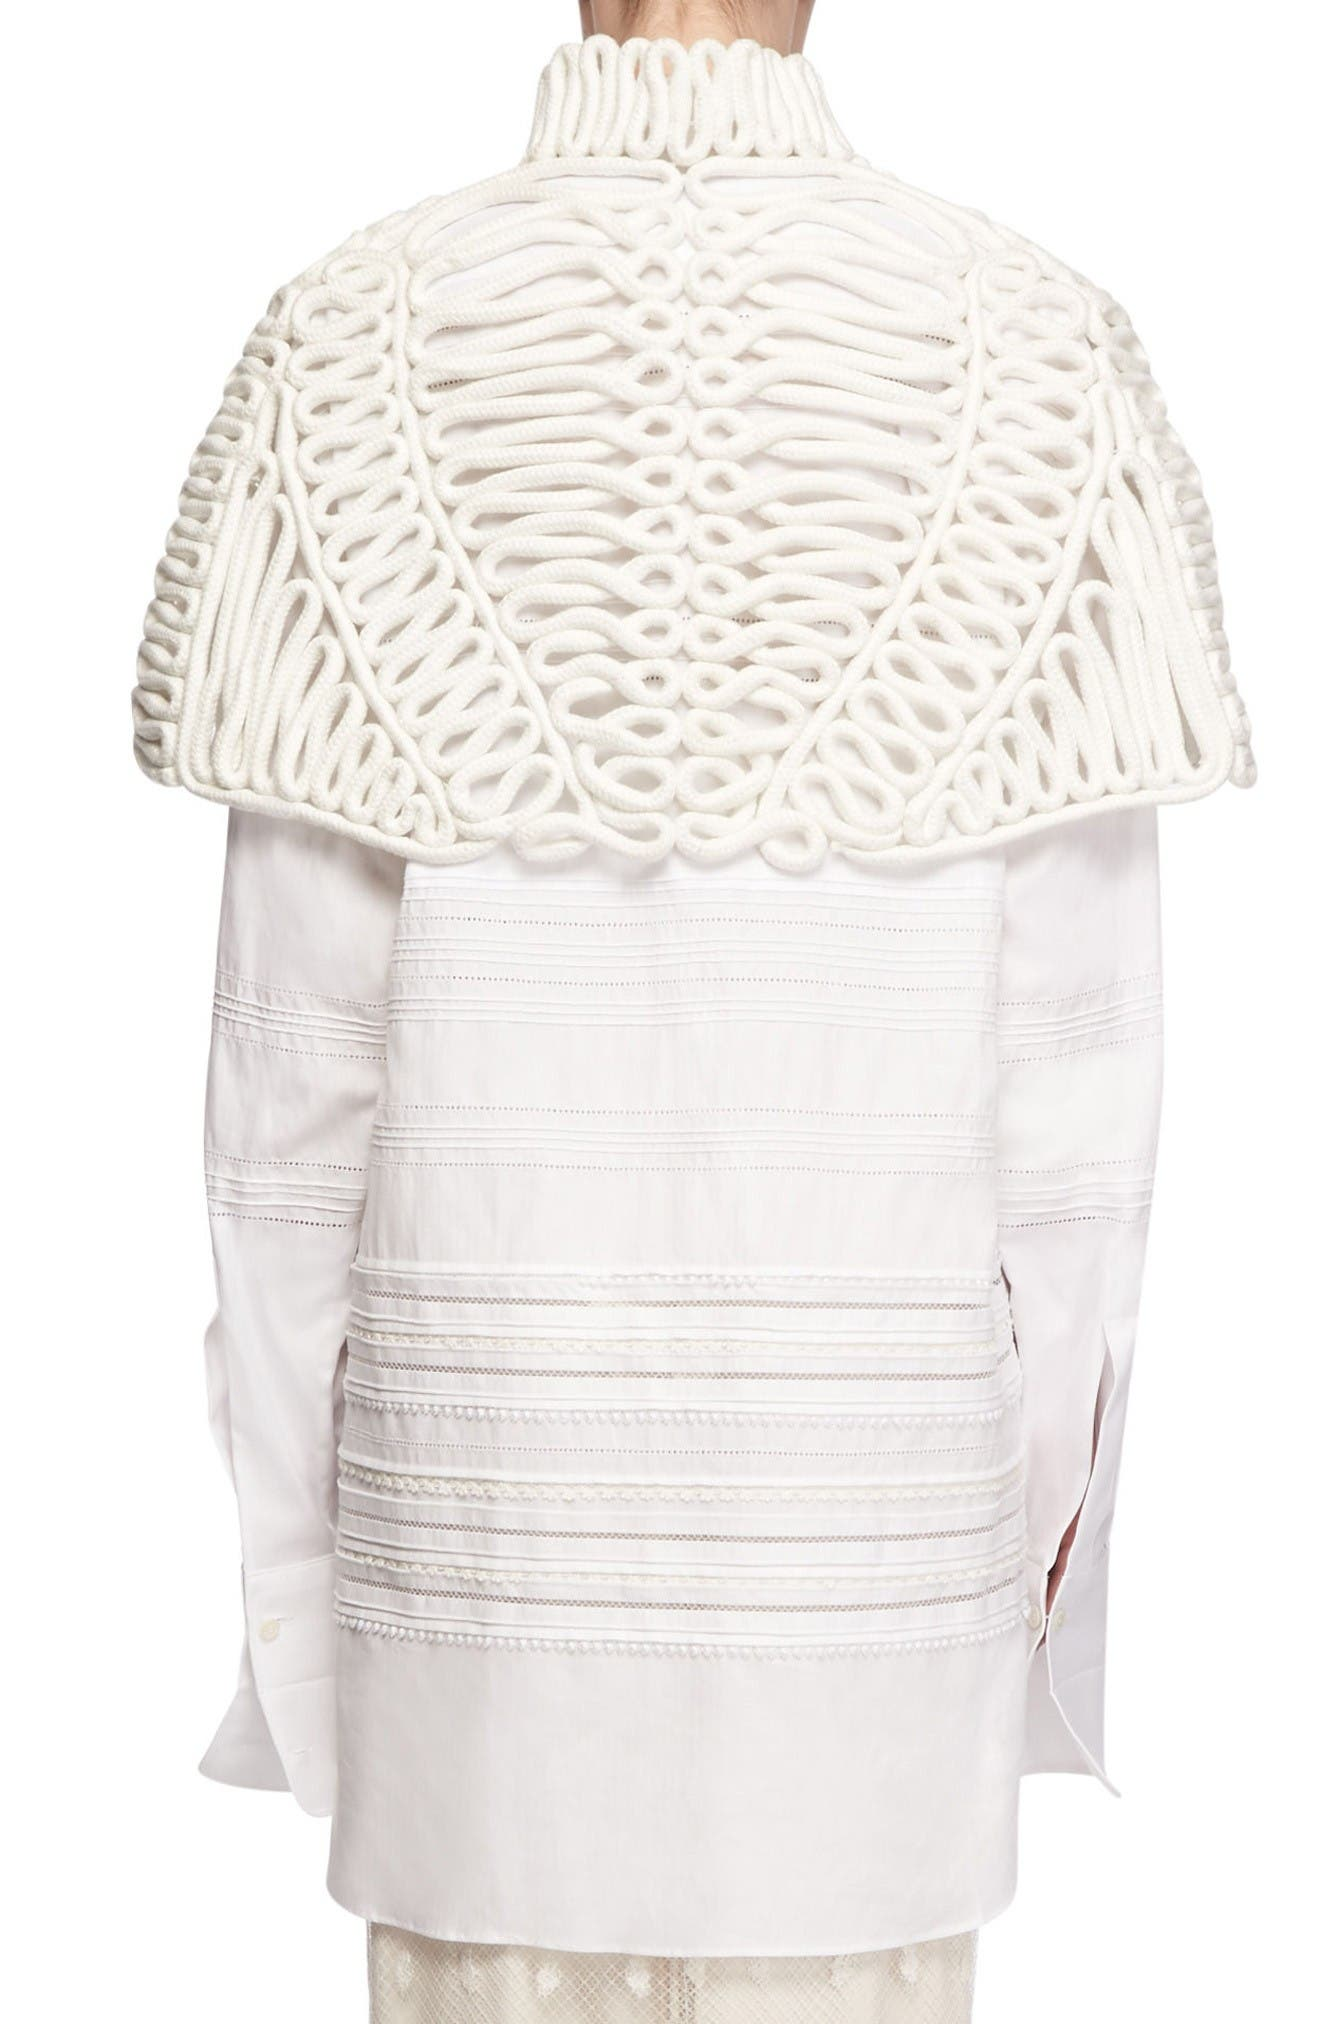 Hand Looped Rope Cape,                             Alternate thumbnail 2, color,                             White